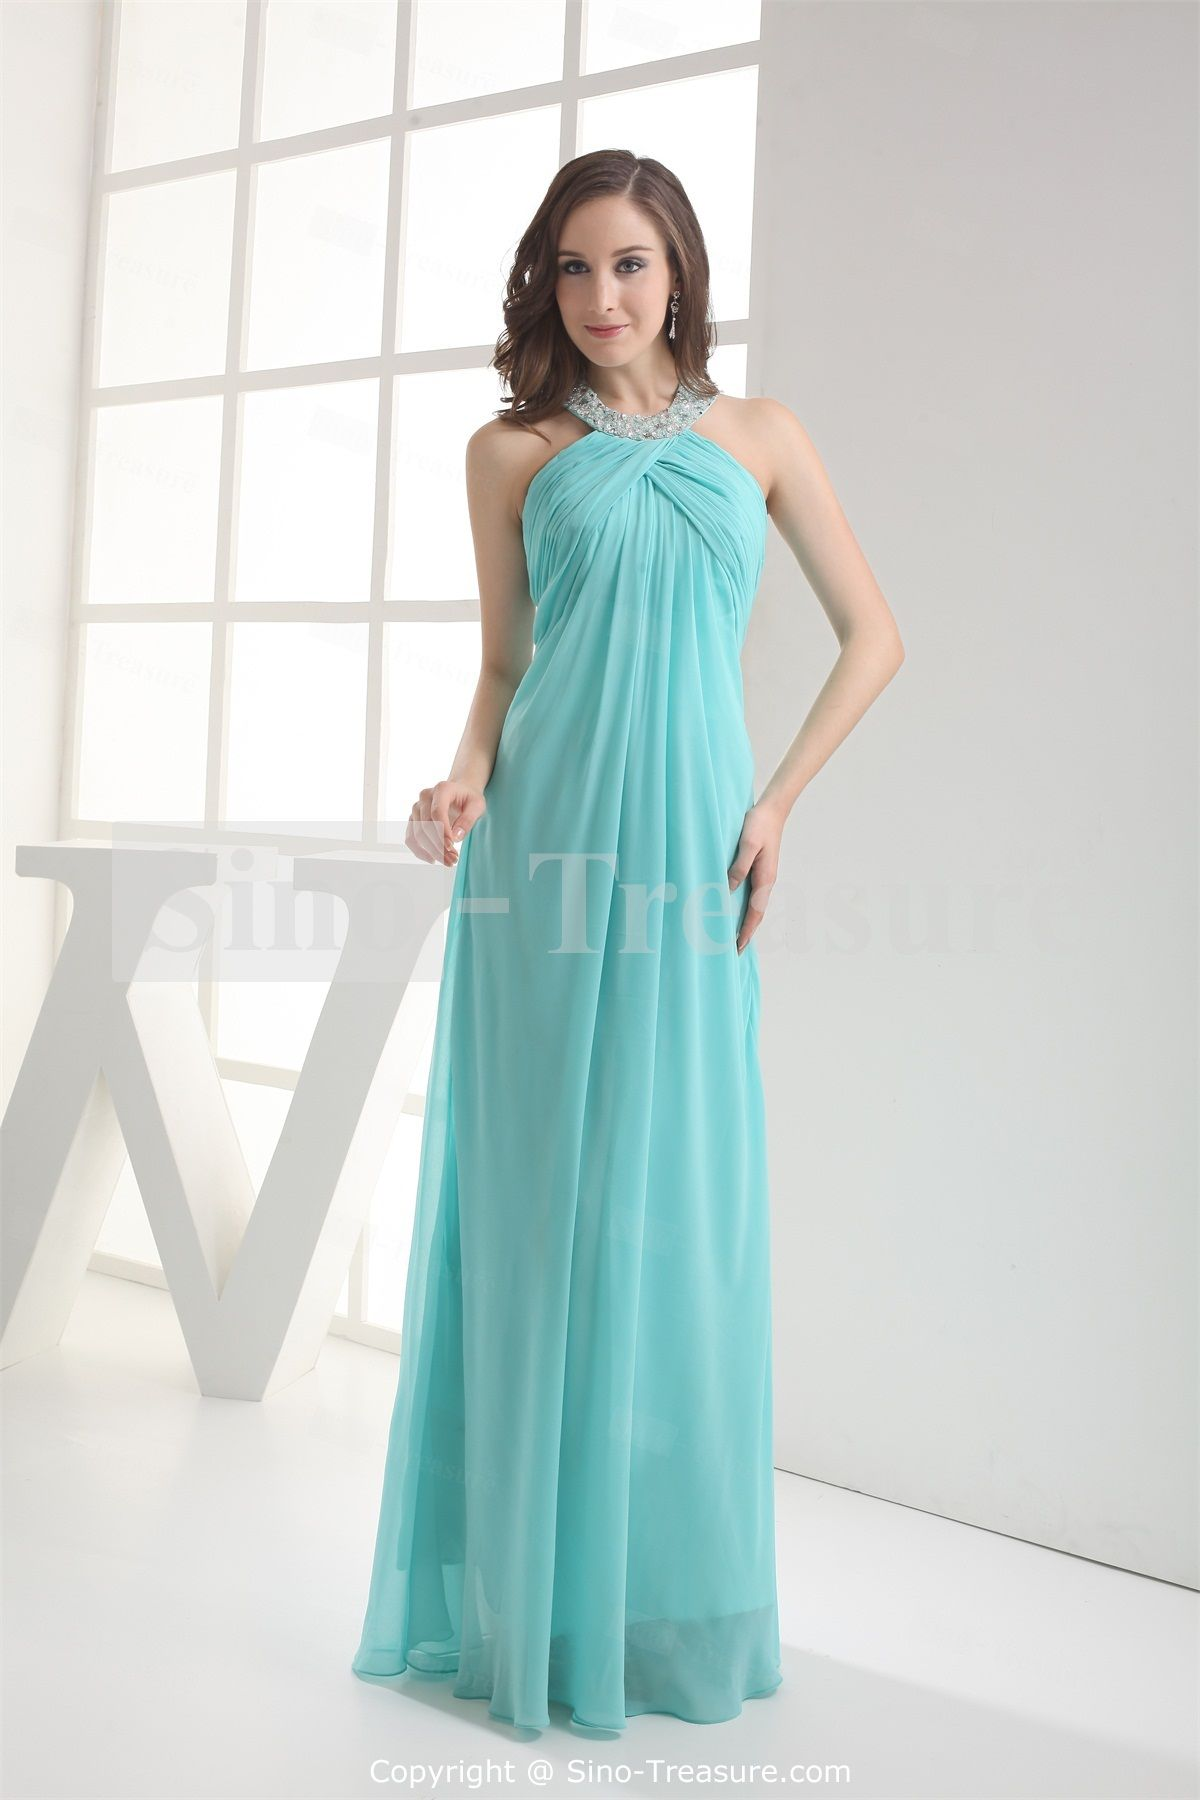 Silk chiffon bridesmaid dresses all dress silk chiffon bridesmaid dresses ombrellifo Image collections